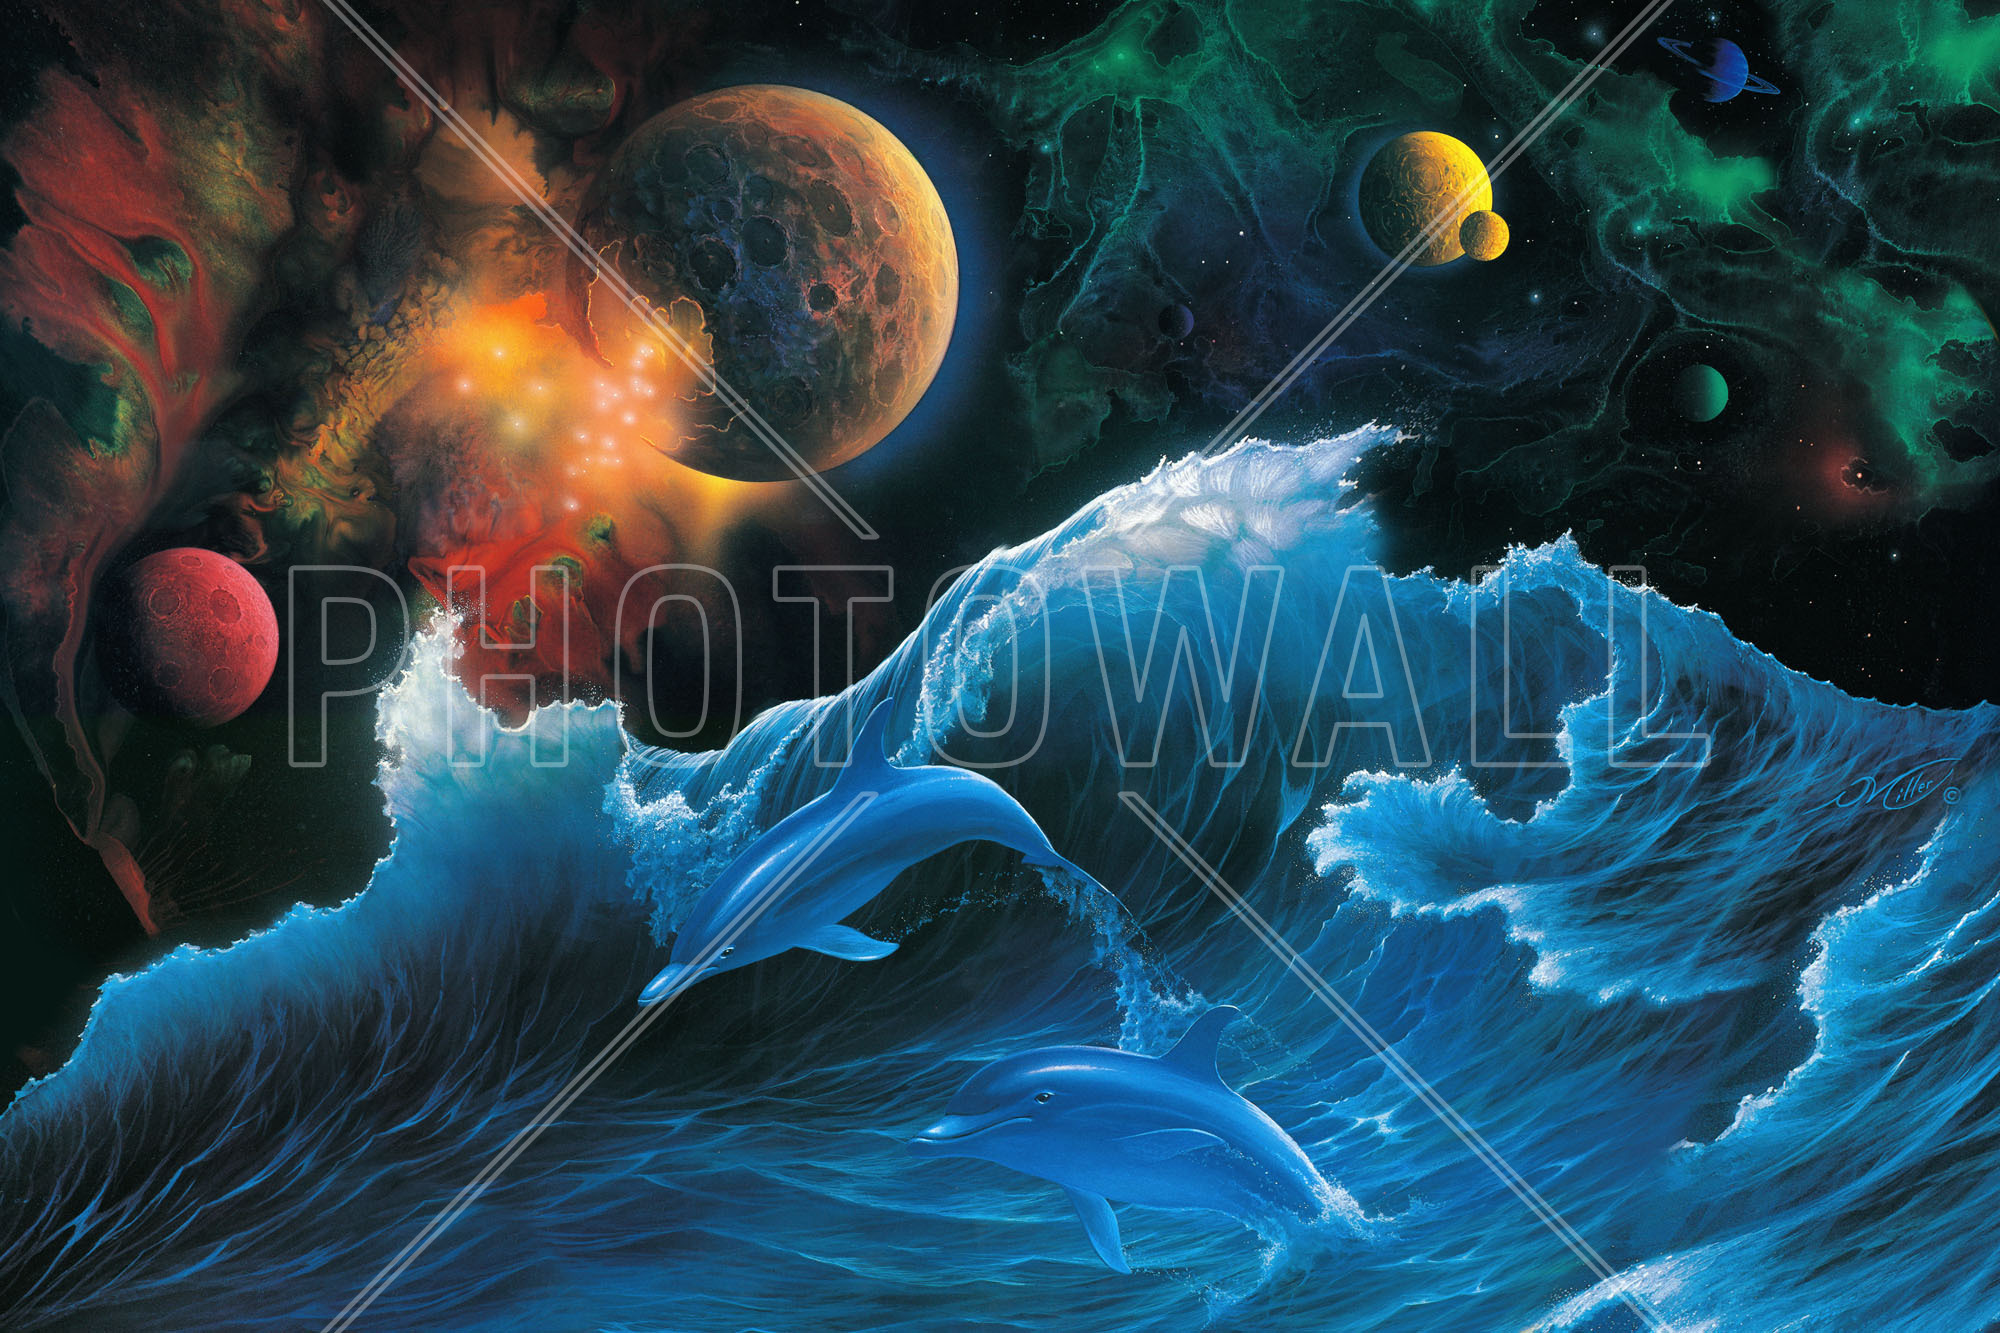 space wall murals uk abstract wall murals wallpapers wallpaperink co uk